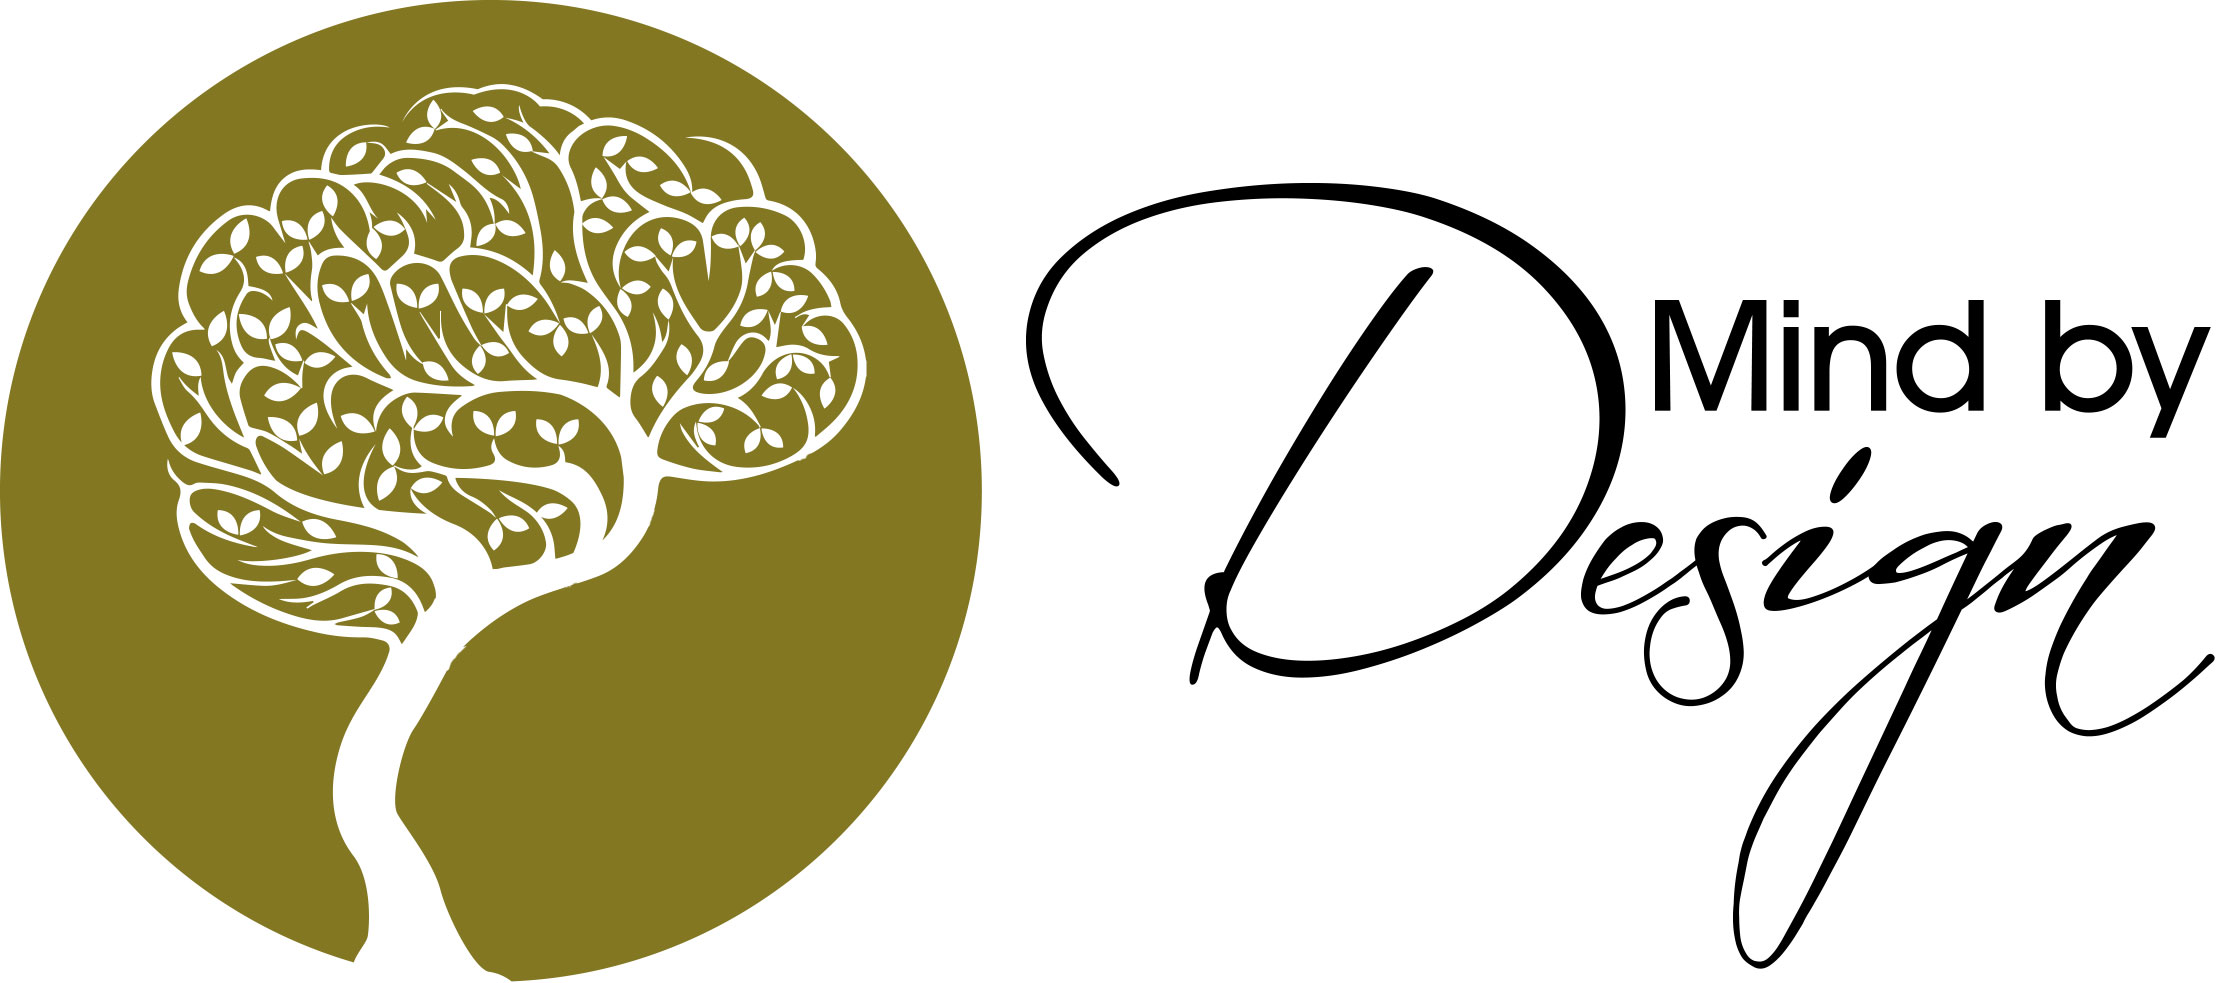 By Design Logo For Mind By Design Online Calgary